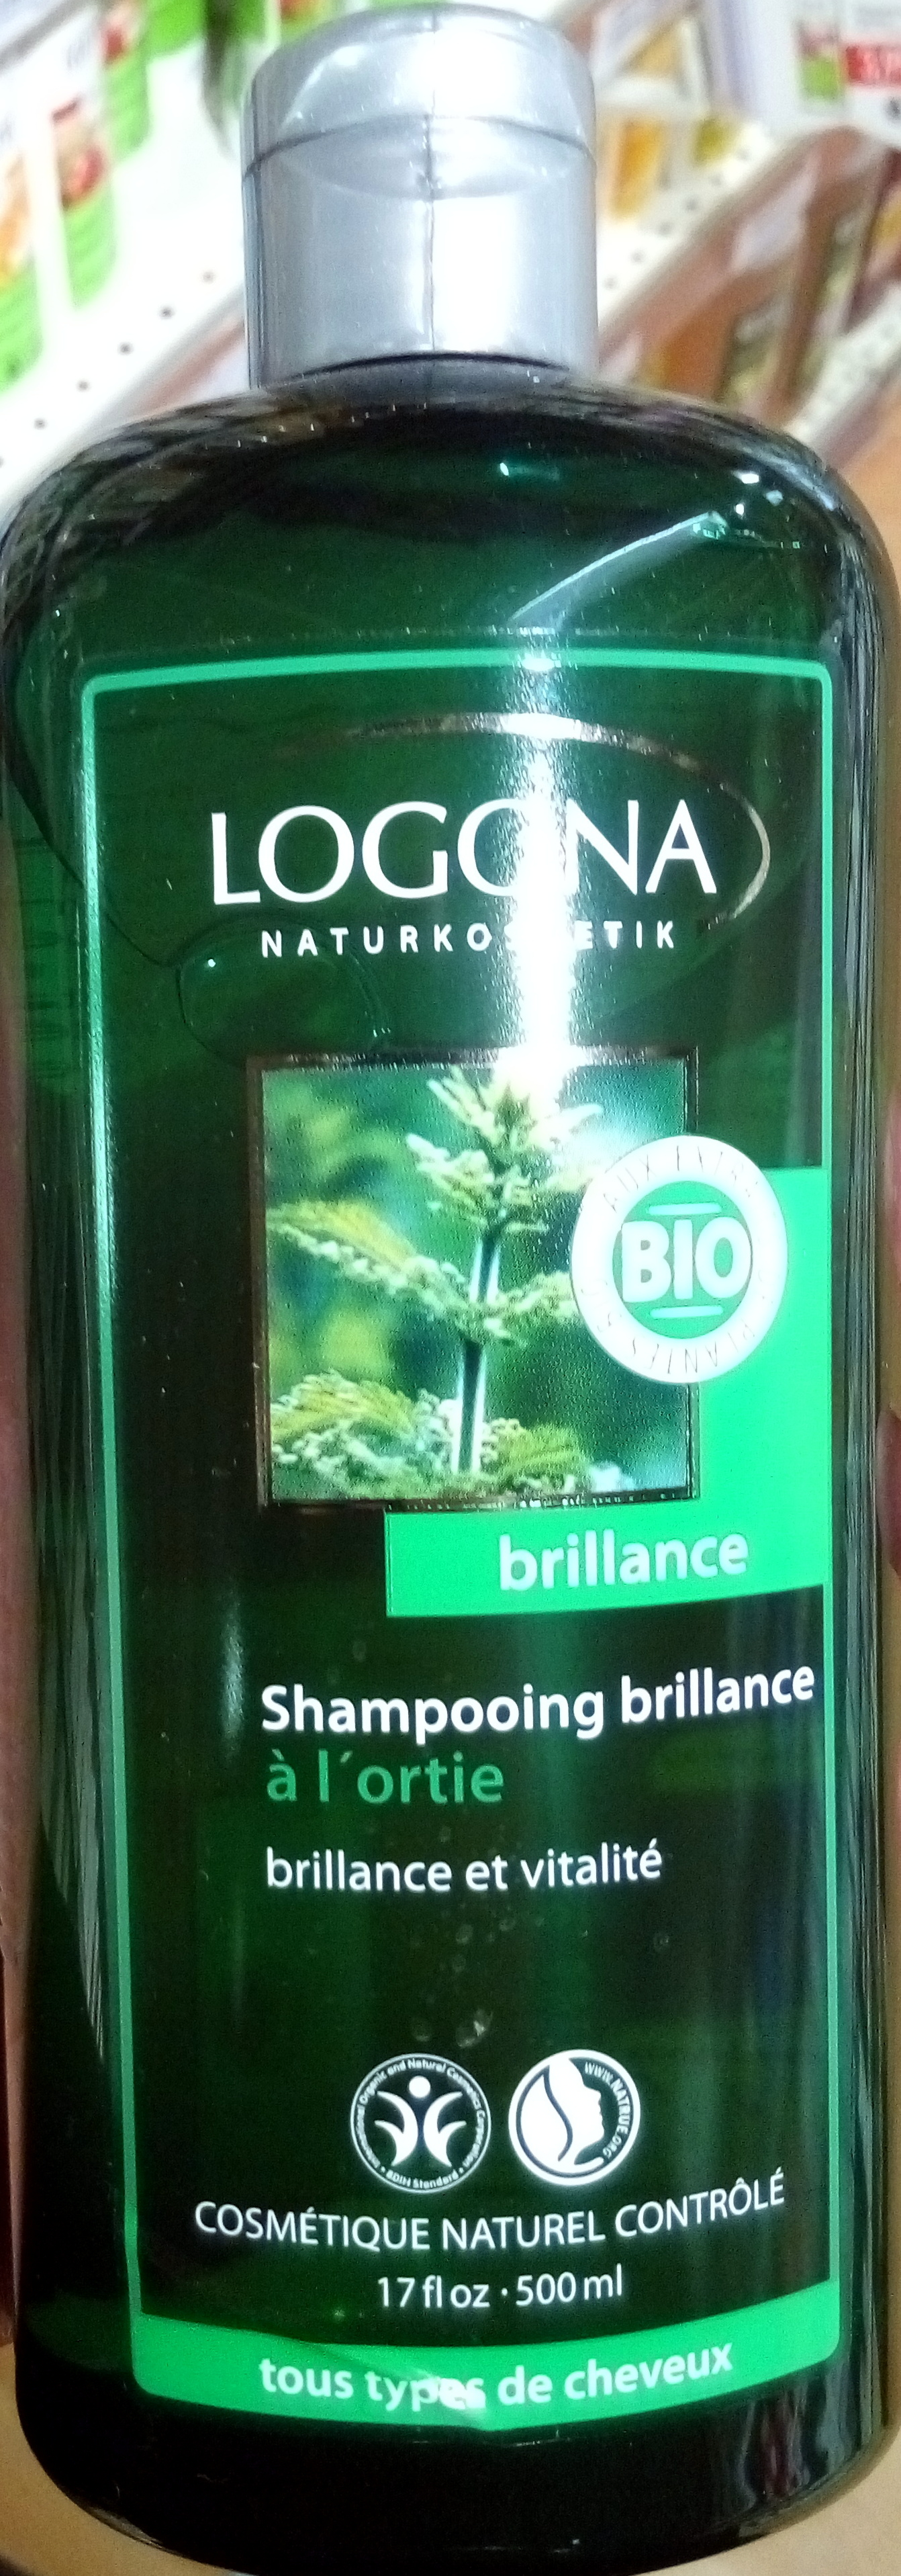 Shampooing brillance à l'ortie - Product - fr